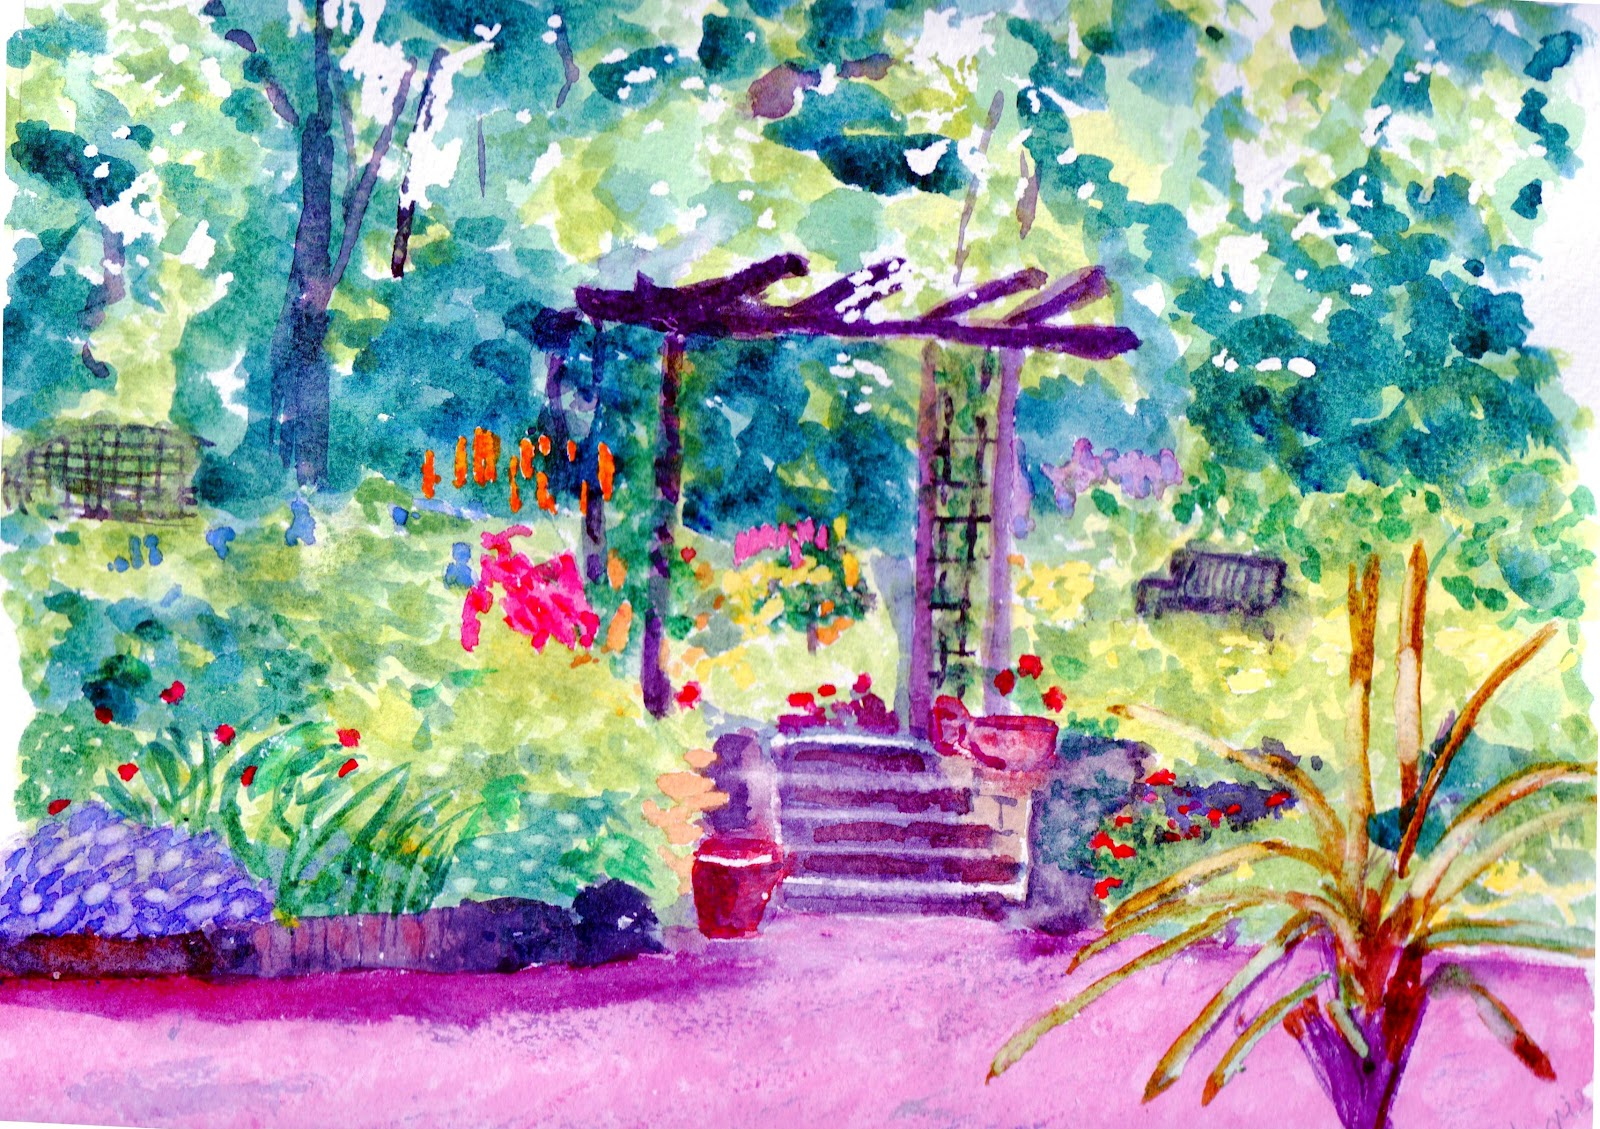 My house with garden drawing for kids - My Garden Drawing Pictures The Garden Yes This Is The Water Colour Painting I Use